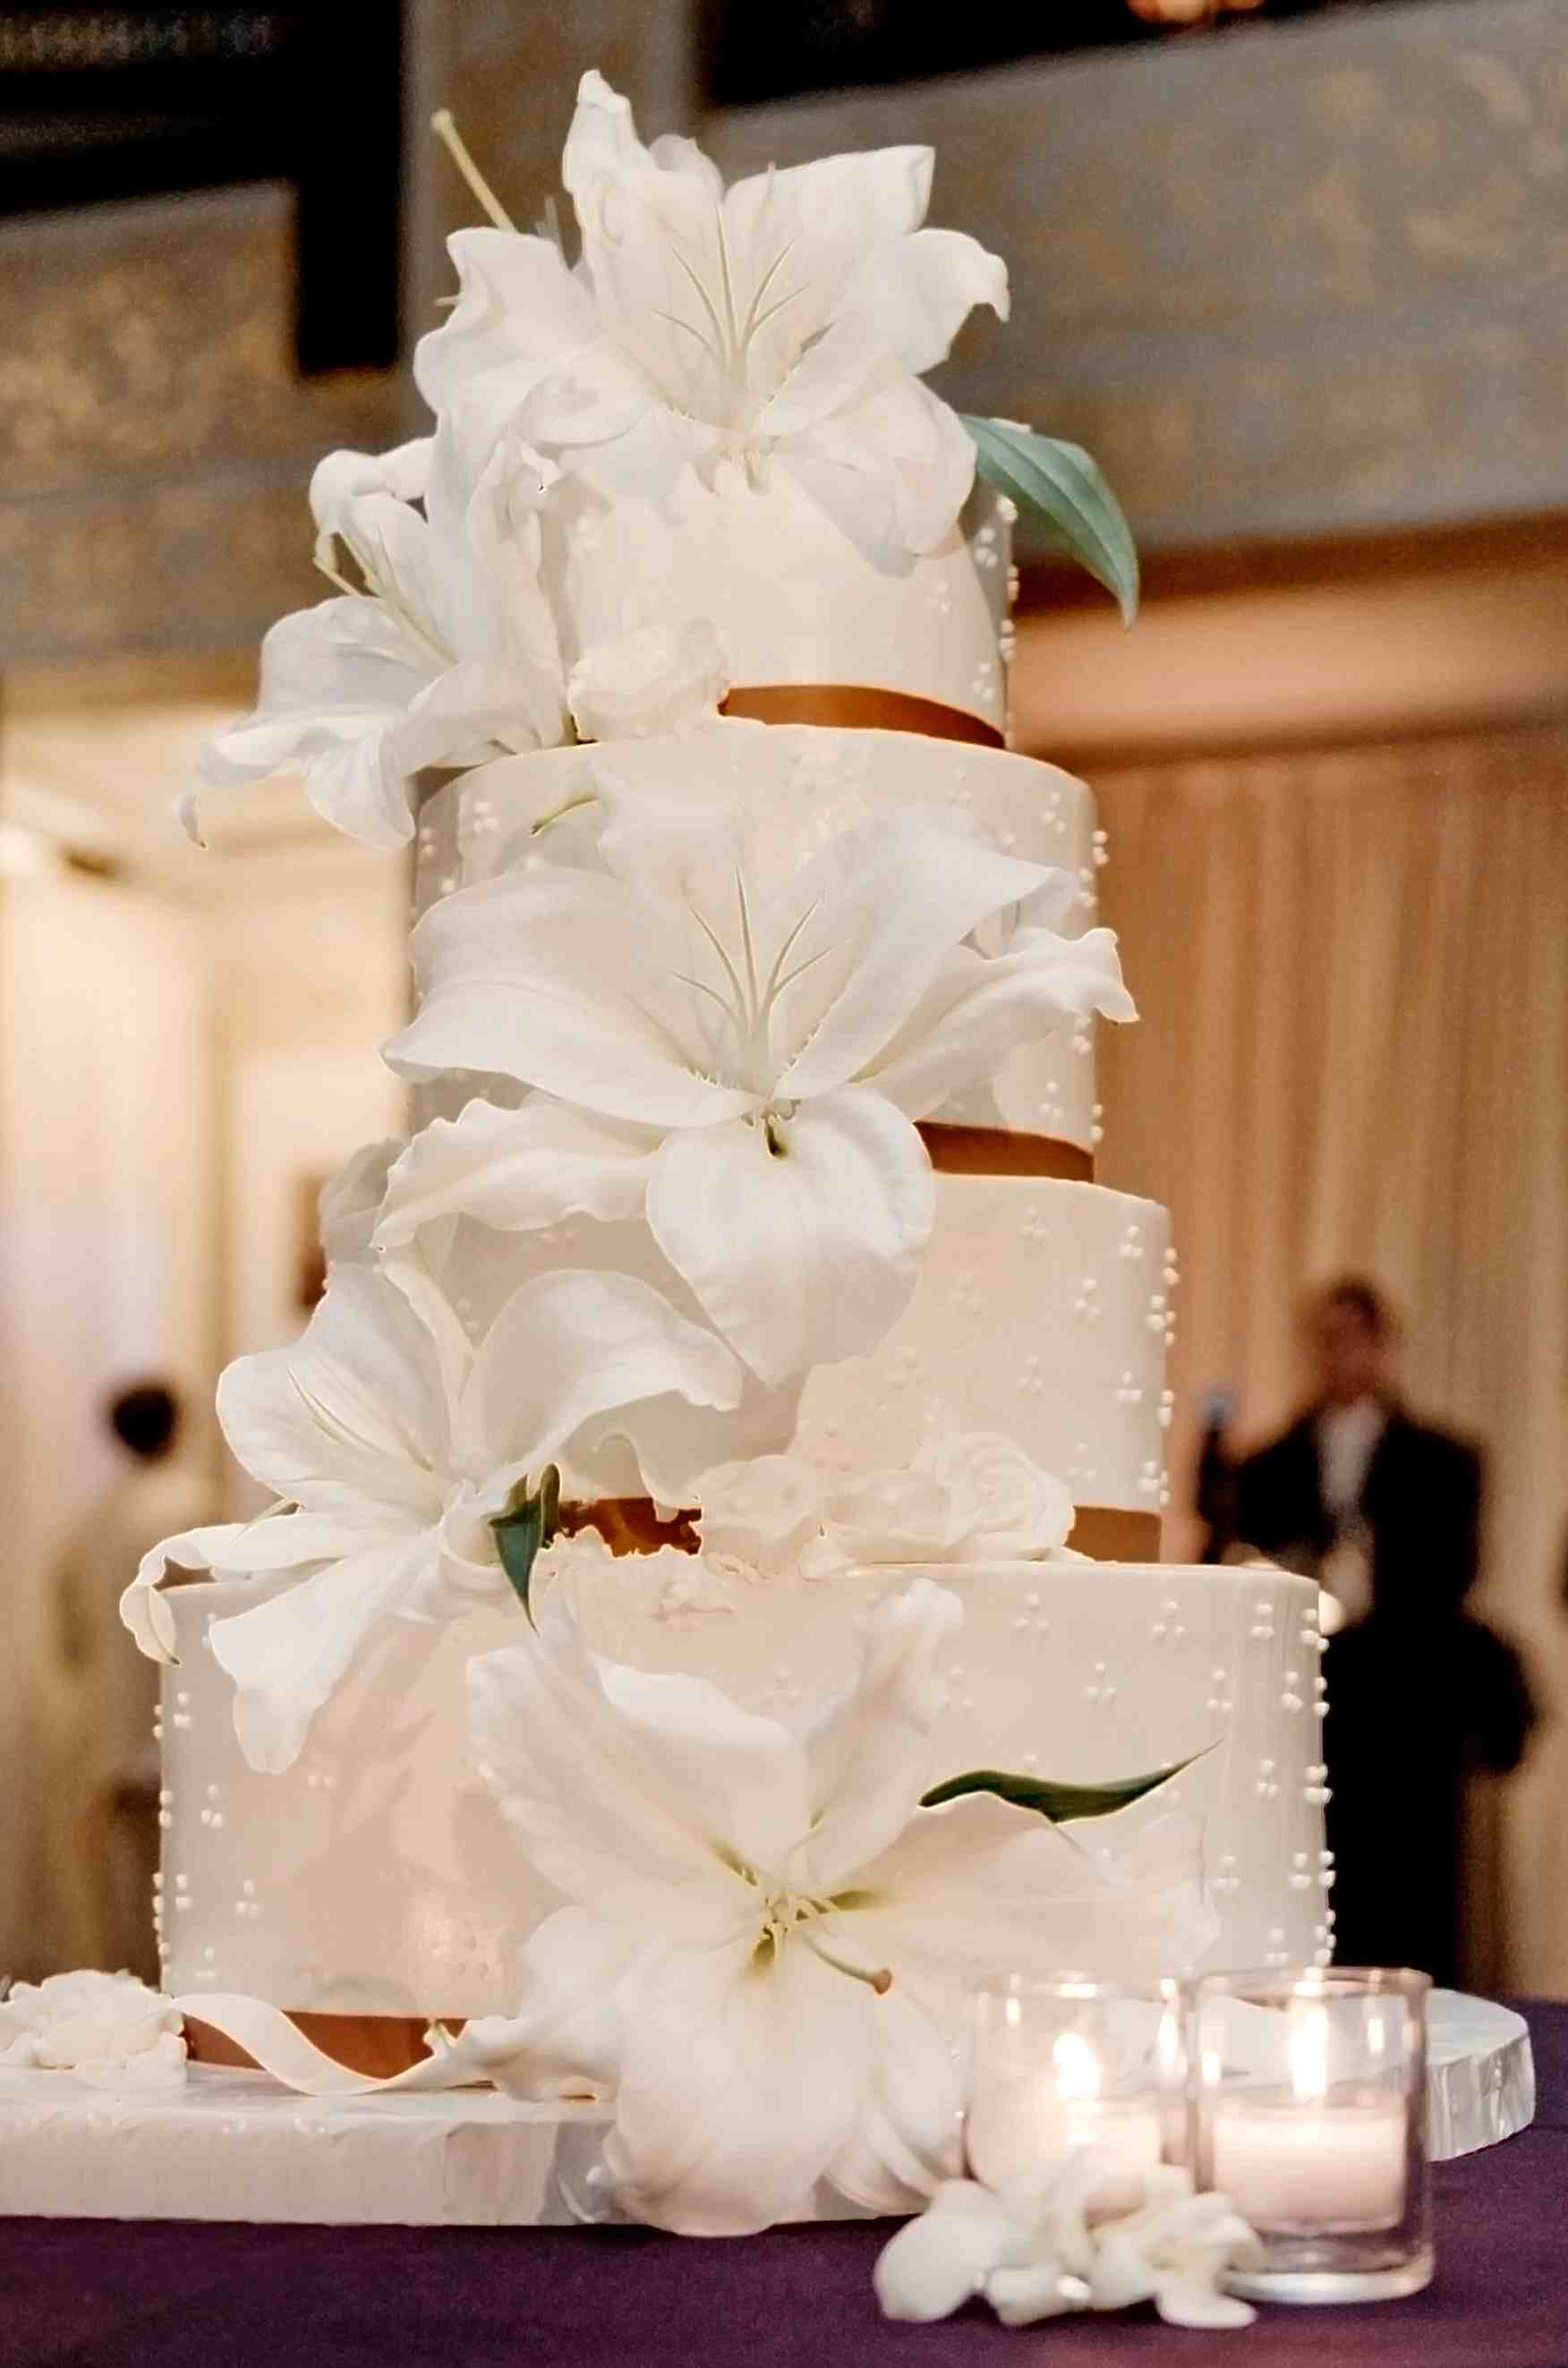 7 White Lily Wedding Cakes With Flowers Photo - Wedding Cake with ...